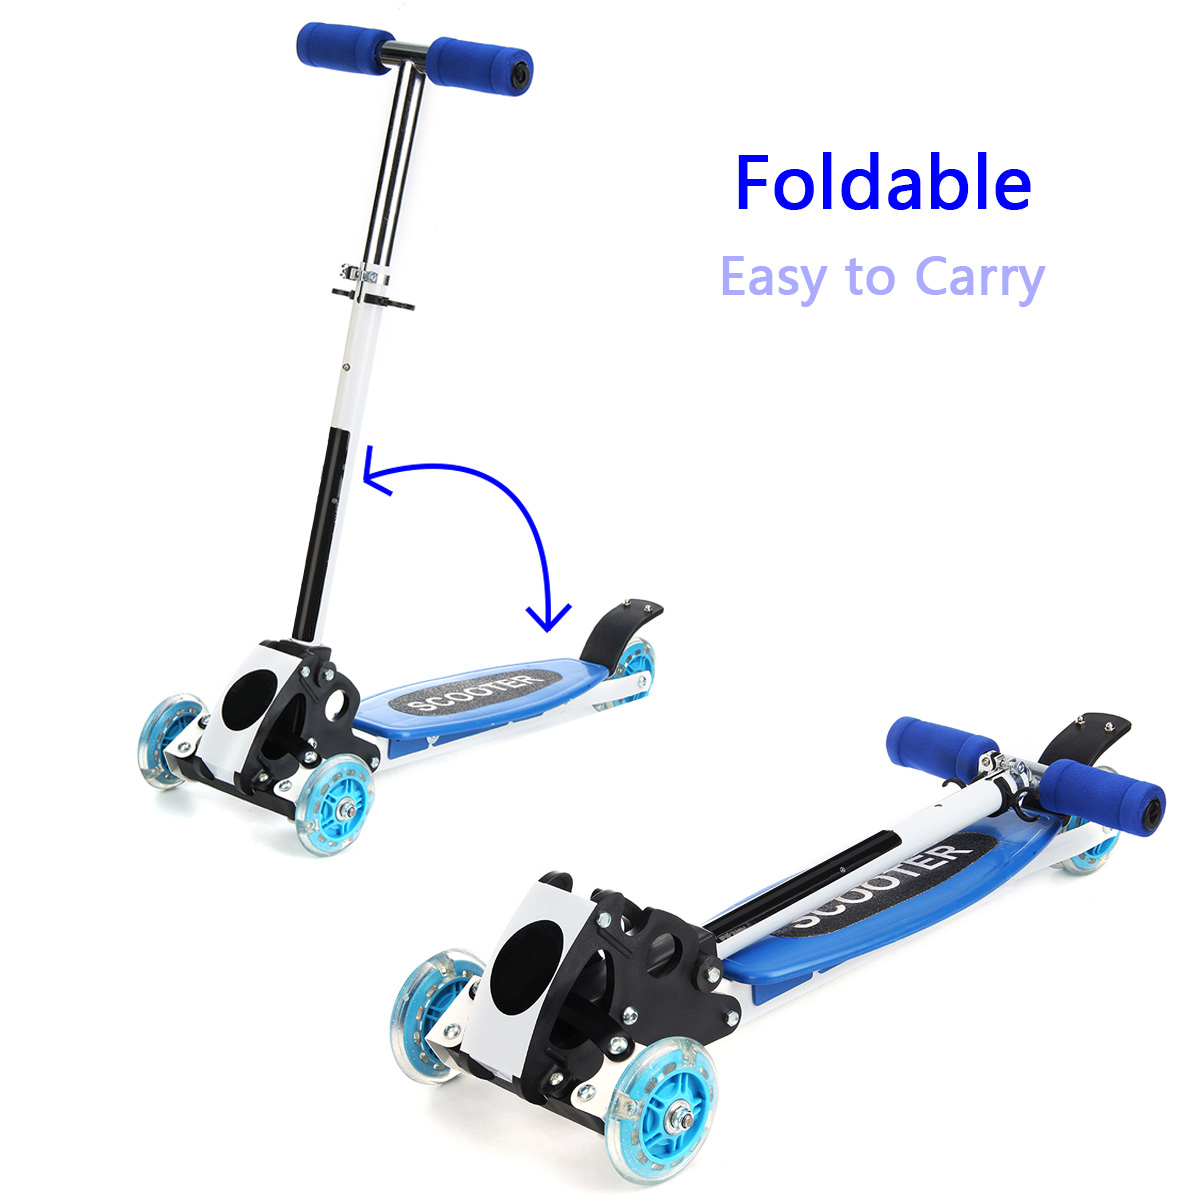 3 Wheels 15km Foldable Aluminum Alloy PU Wheel Anti-Skidding Kick Scooter For Kids Happy Baby Gift Cooler Scooter3 Wheels 15km Foldable Aluminum Alloy PU Wheel Anti-Skidding Kick Scooter For Kids Happy Baby Gift Cooler Scooter